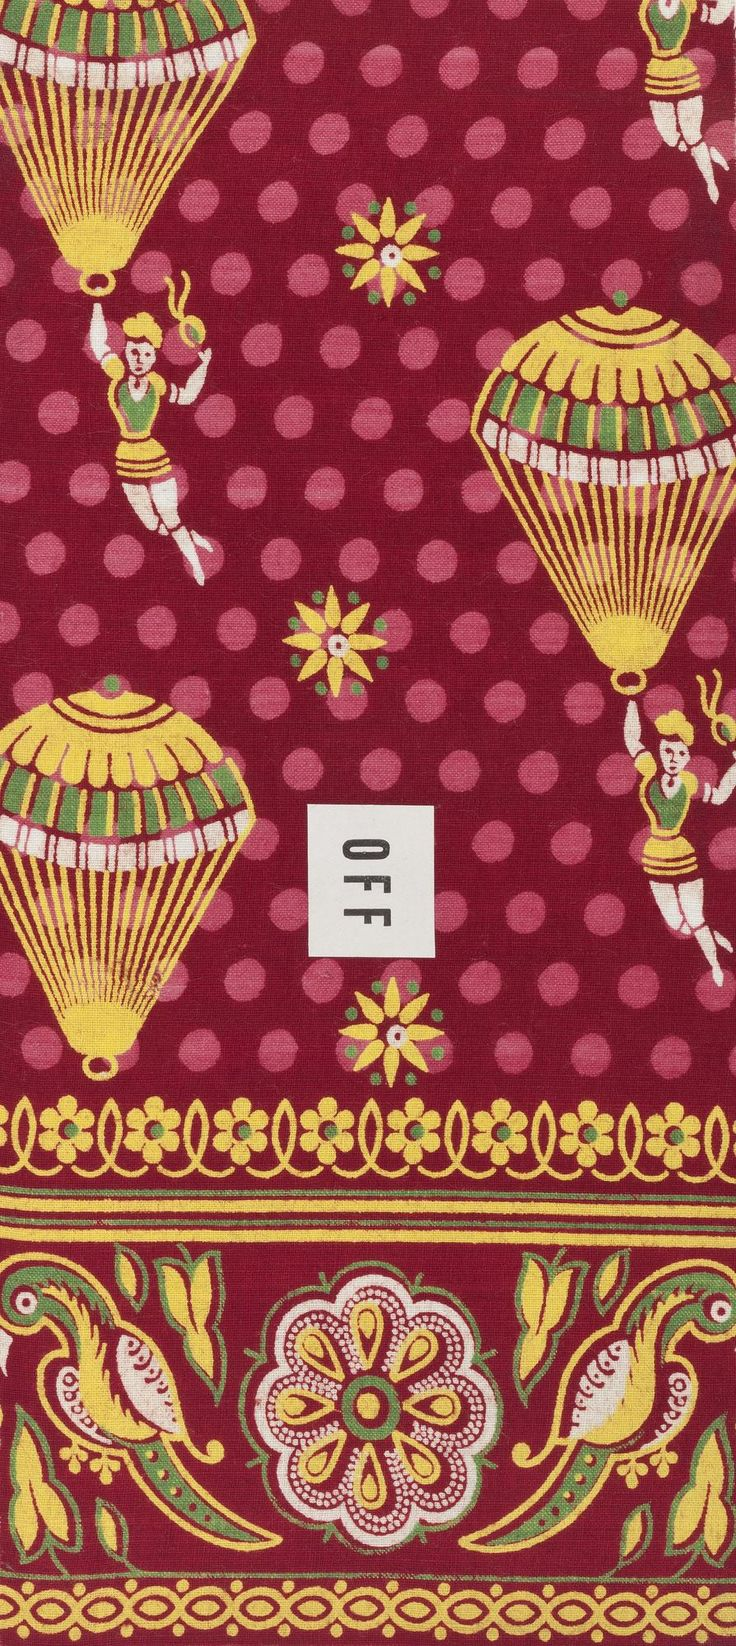 Sample of cylinder printed cotton cloth showing women and parachutes on a spotted ground in 'two red' colouring, with a border of stylised parrots and lotus flowers. From 'Book 9', part of the Turkey Red Collection, A.1962.1266.1 - A.1962.1266.78, with subdivisions, totalling c. 40,000 items: Scottish, Dunbartonshire, by United Turkey Red Co. Ltd, 1898 - 1915